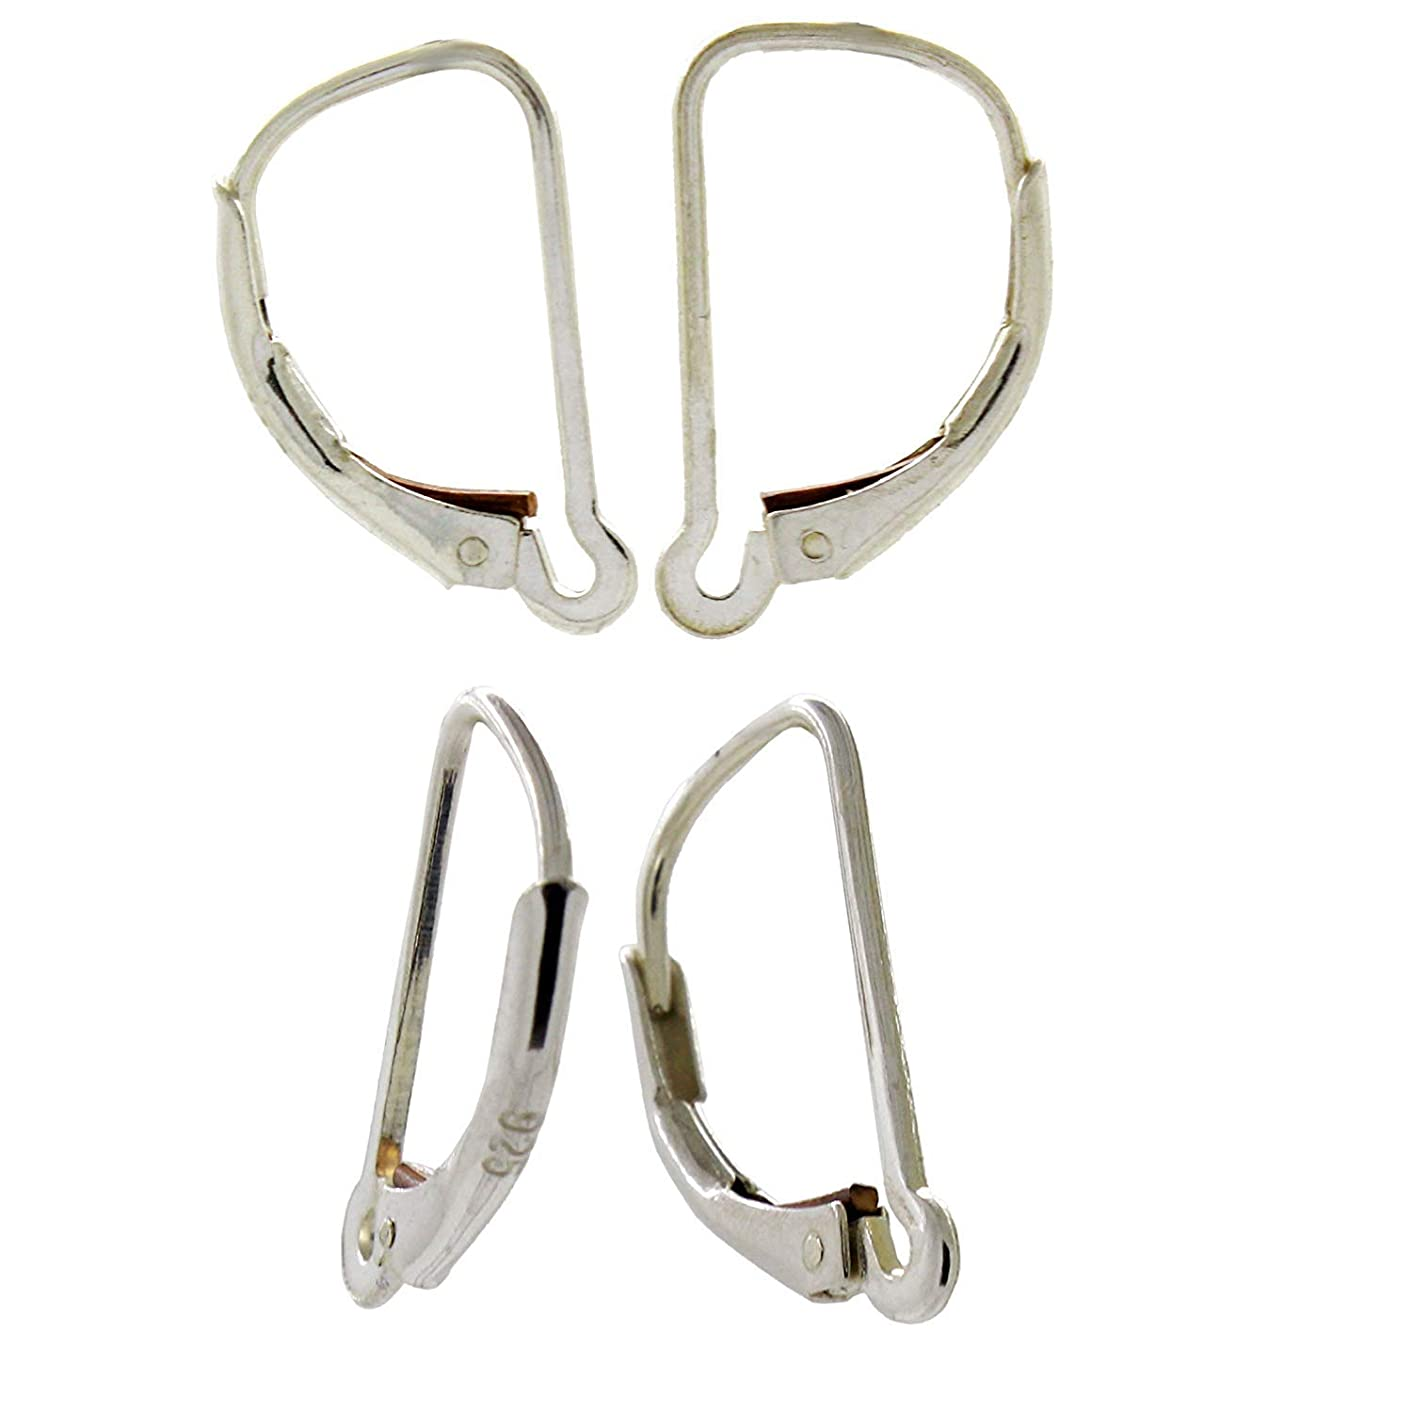 Sterling Silver Interchangeable Leverback Earring Wires with Closed Hoop